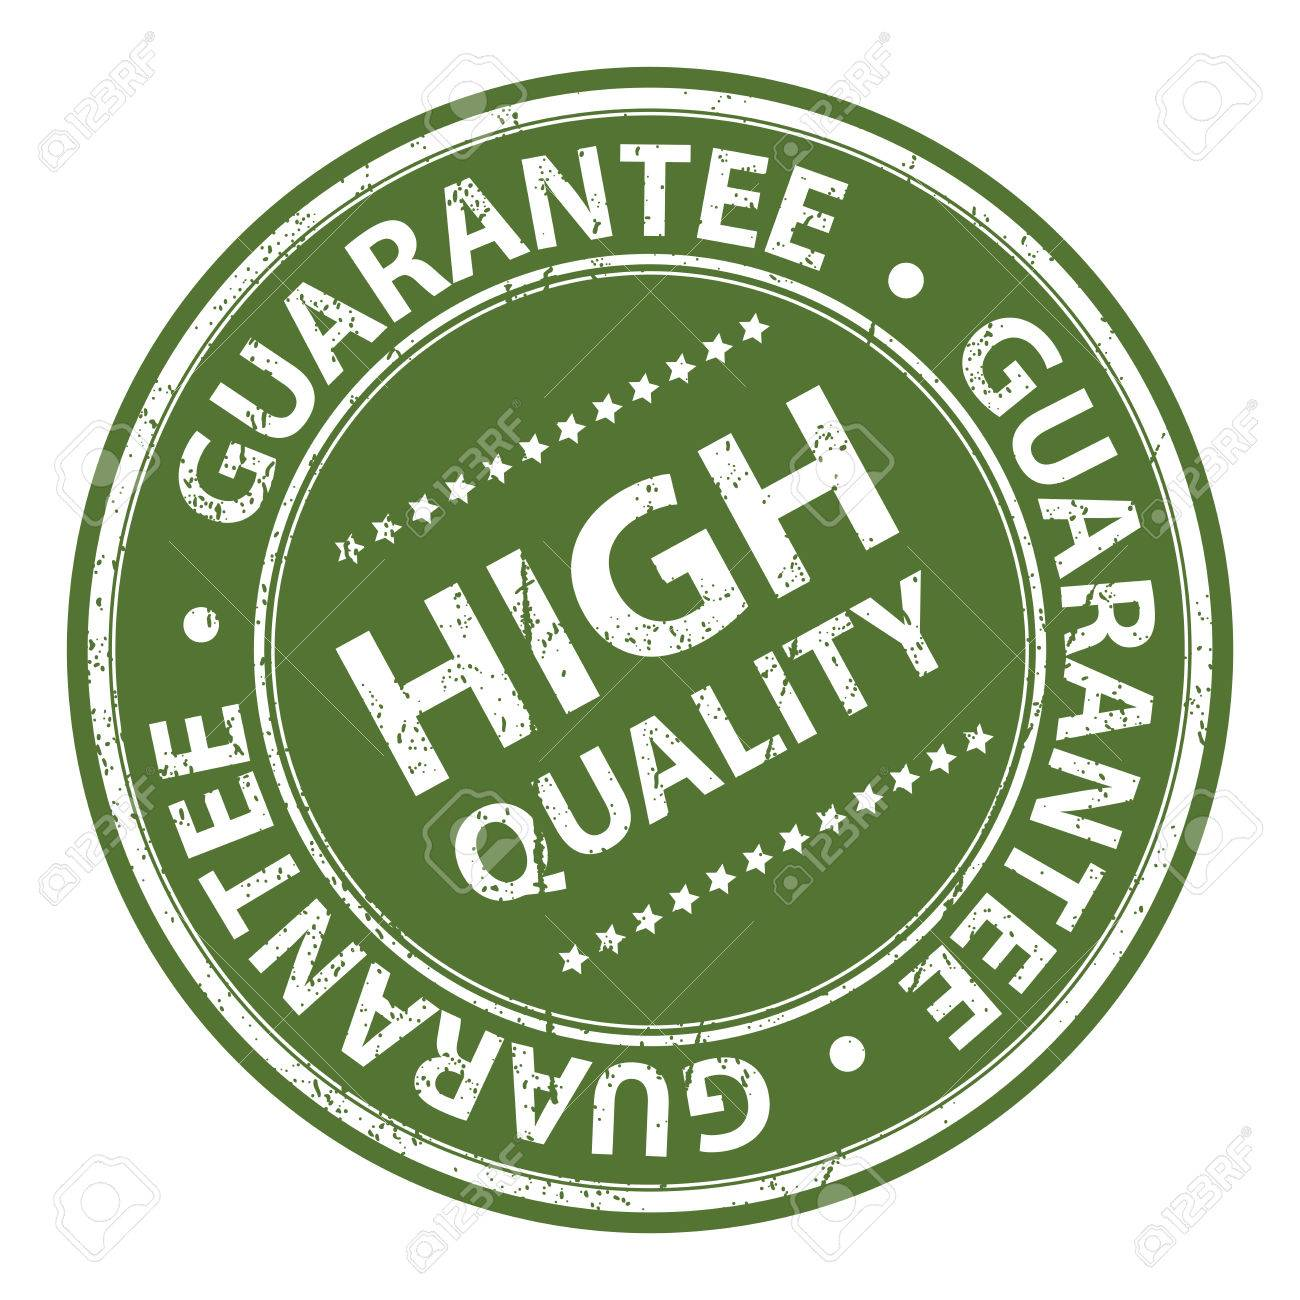 High Quality For All Grades